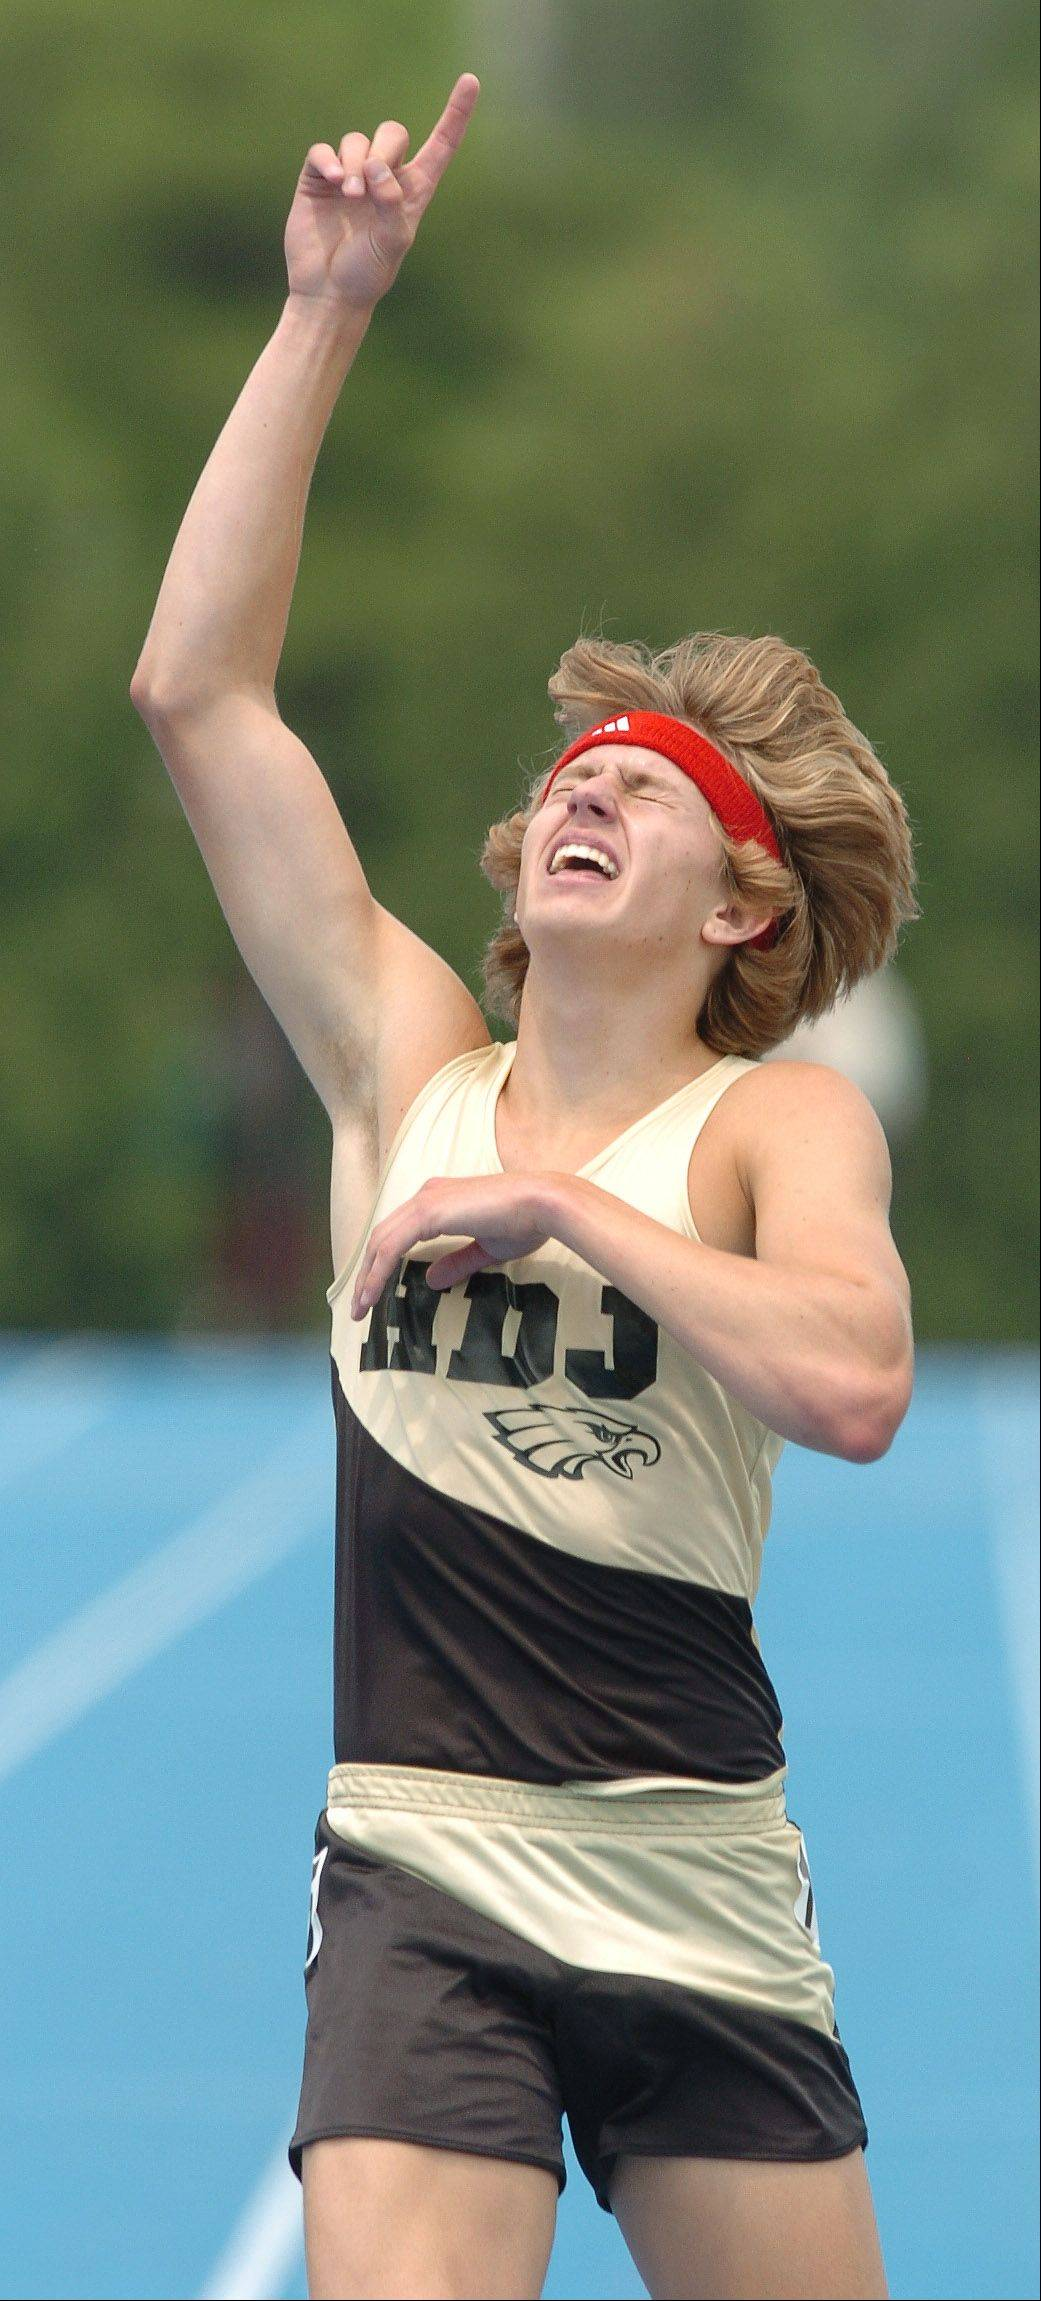 Evan Jager of Jacobs High School wins the 3,200 meter run during the state boys track finals at Charleston in May 2007.